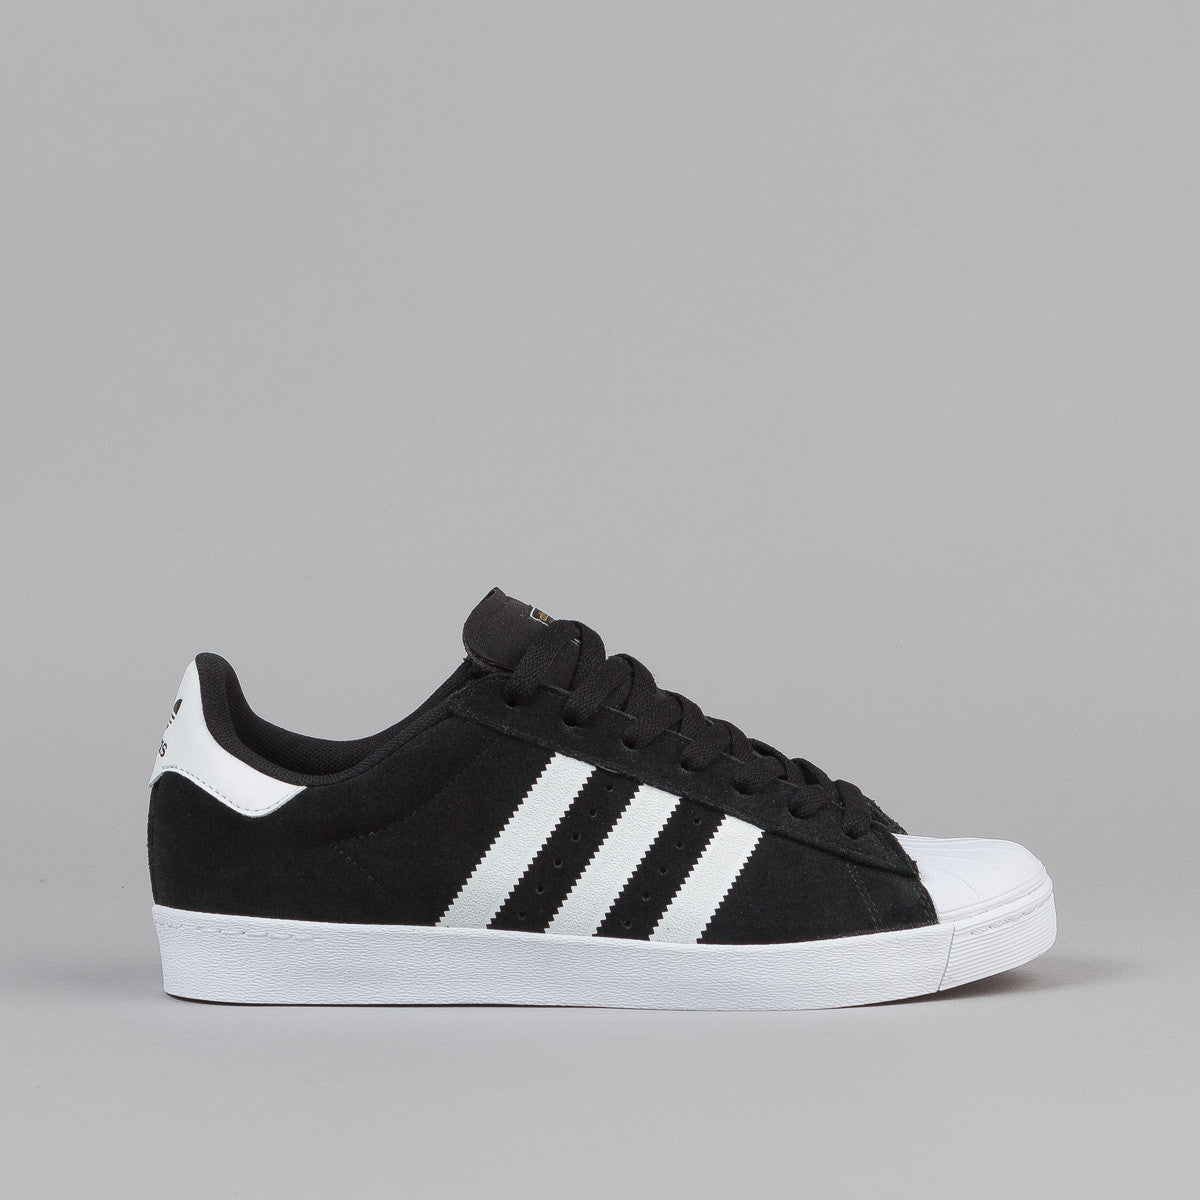 18a749c3e0f Cheap Adidas Superstar Vulc ADV Black Suede & White Shoes Men's Shoes